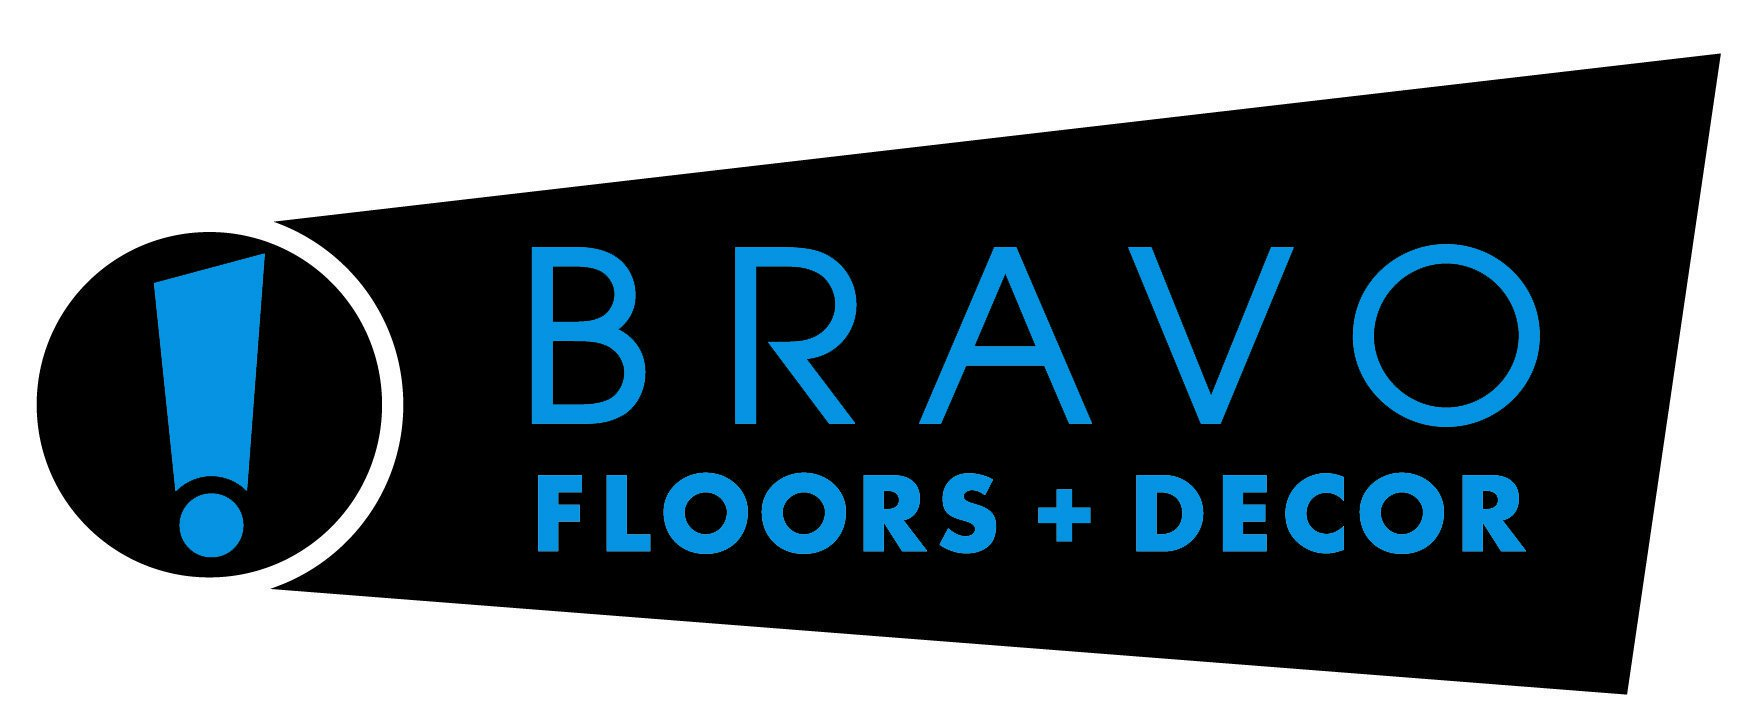 Bravo Floors & Decor